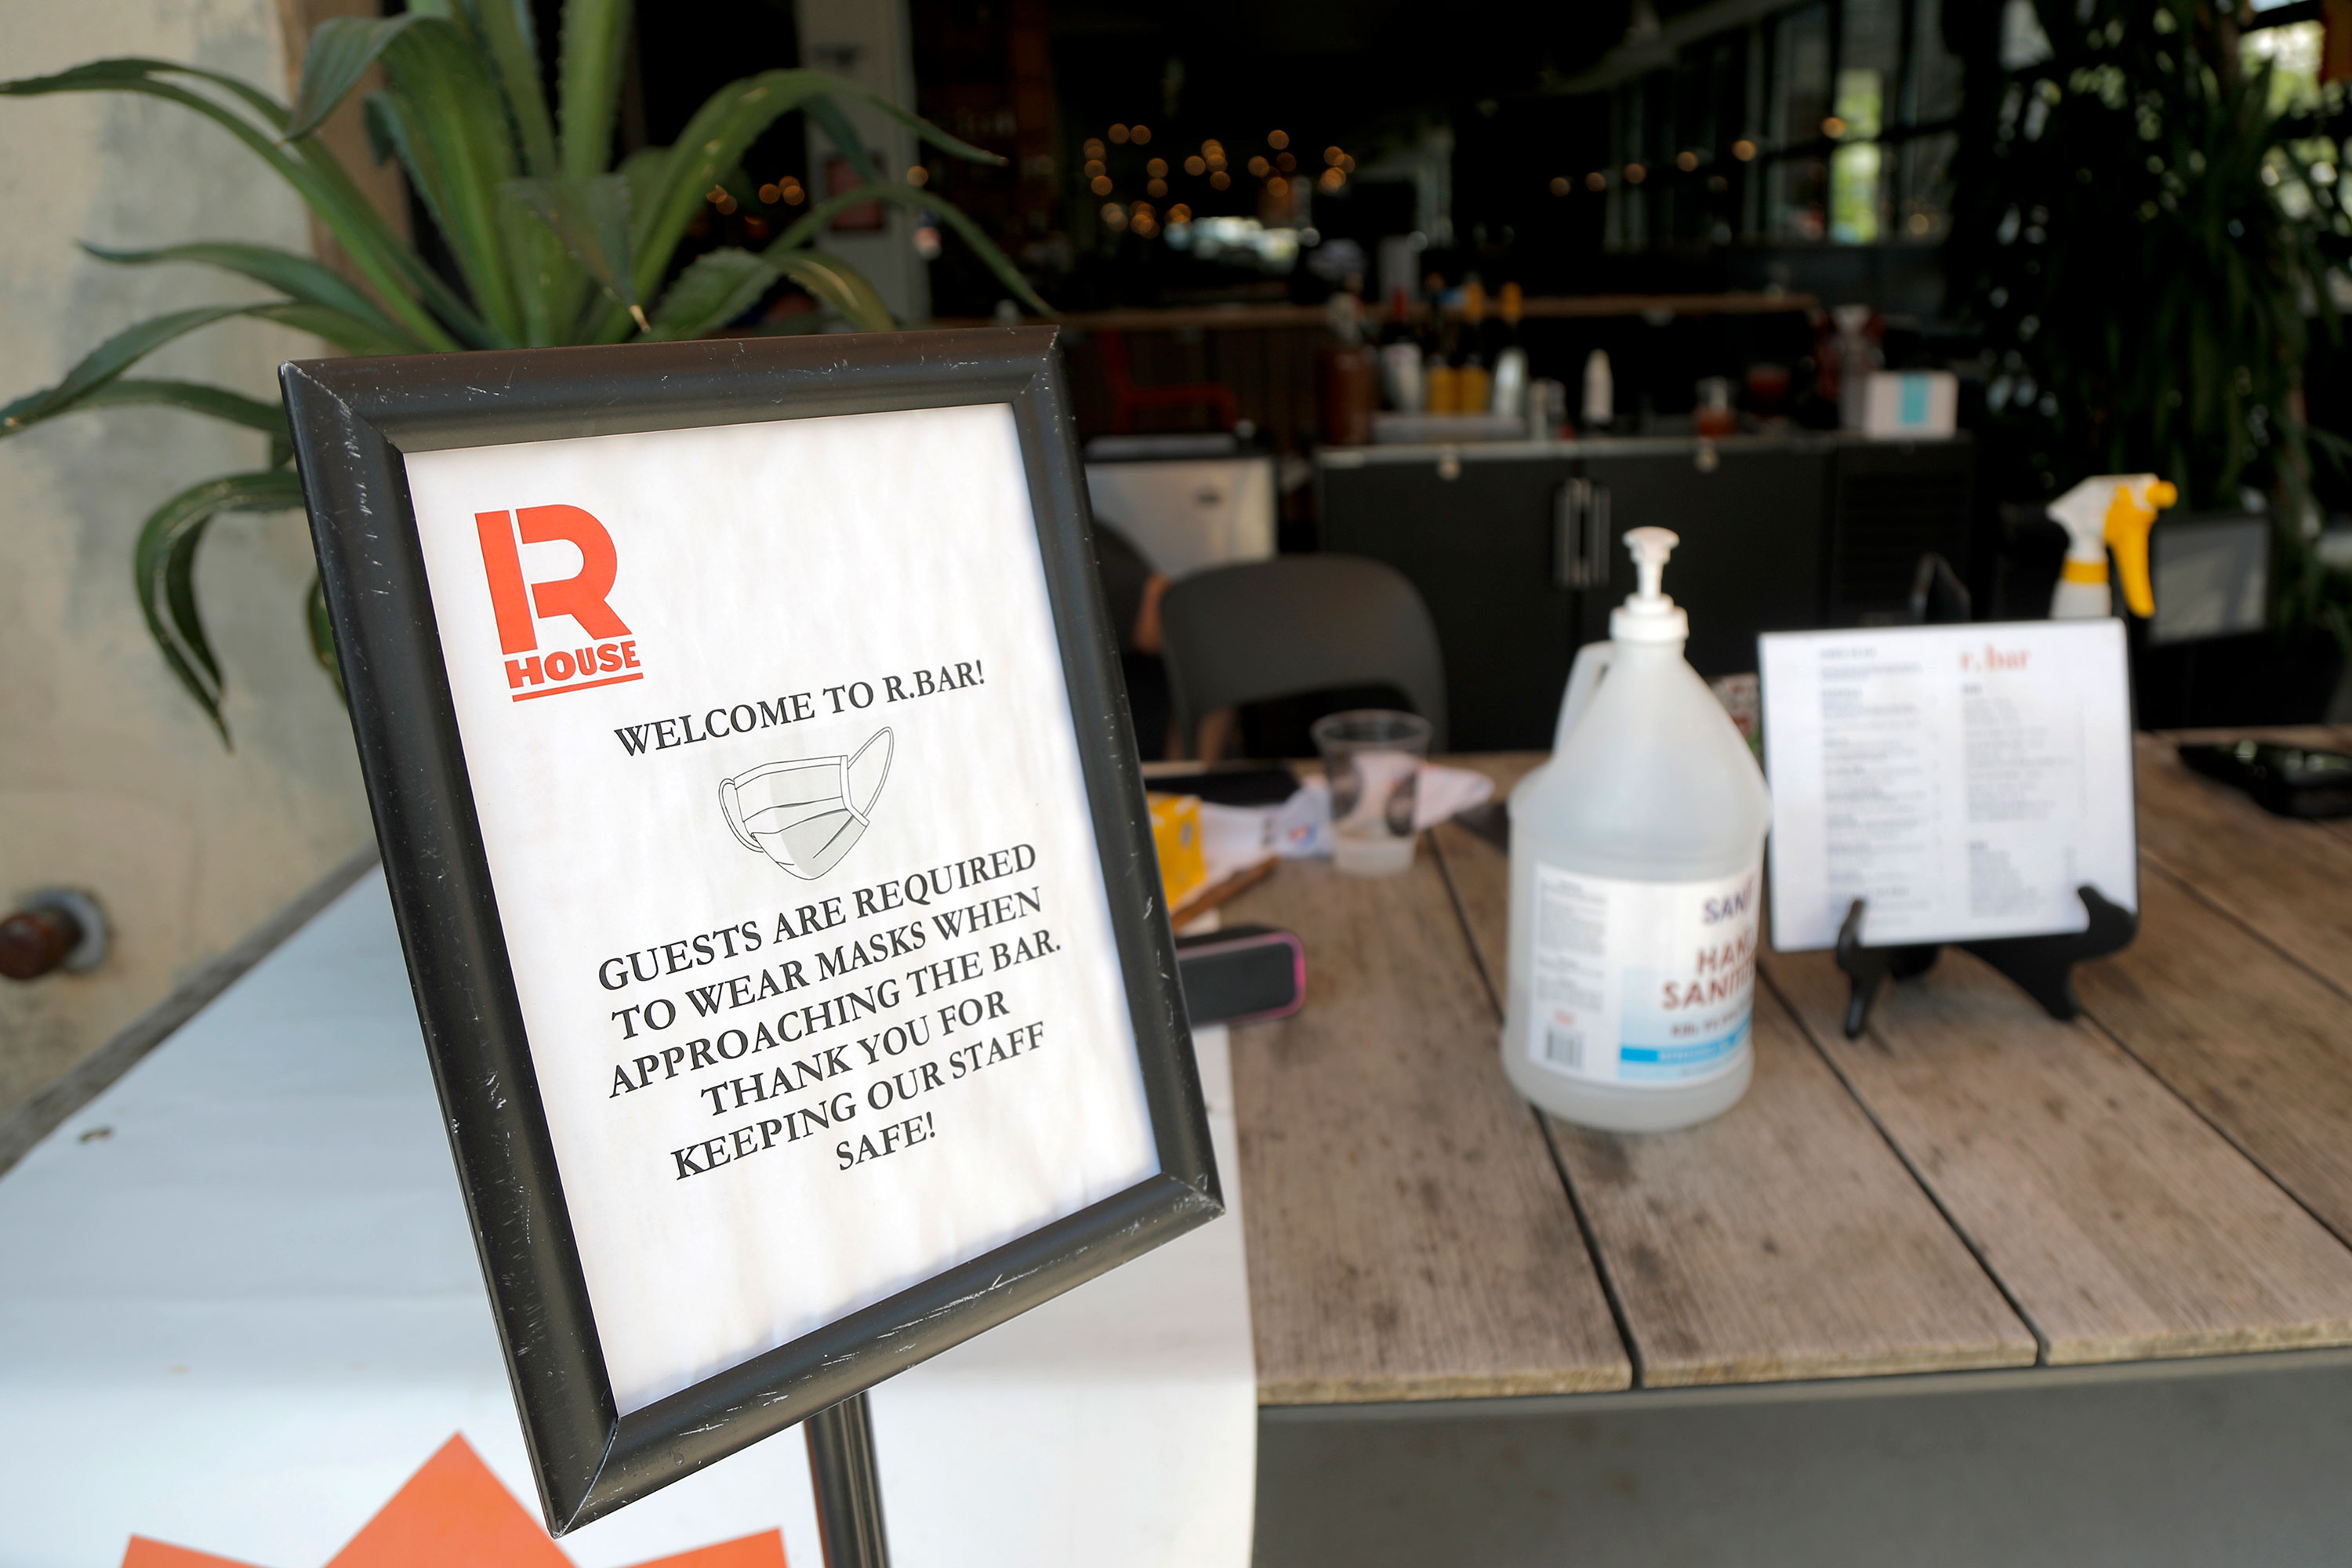 A sign is displayed near the entrance of a food hall in Baltimore on July 15.